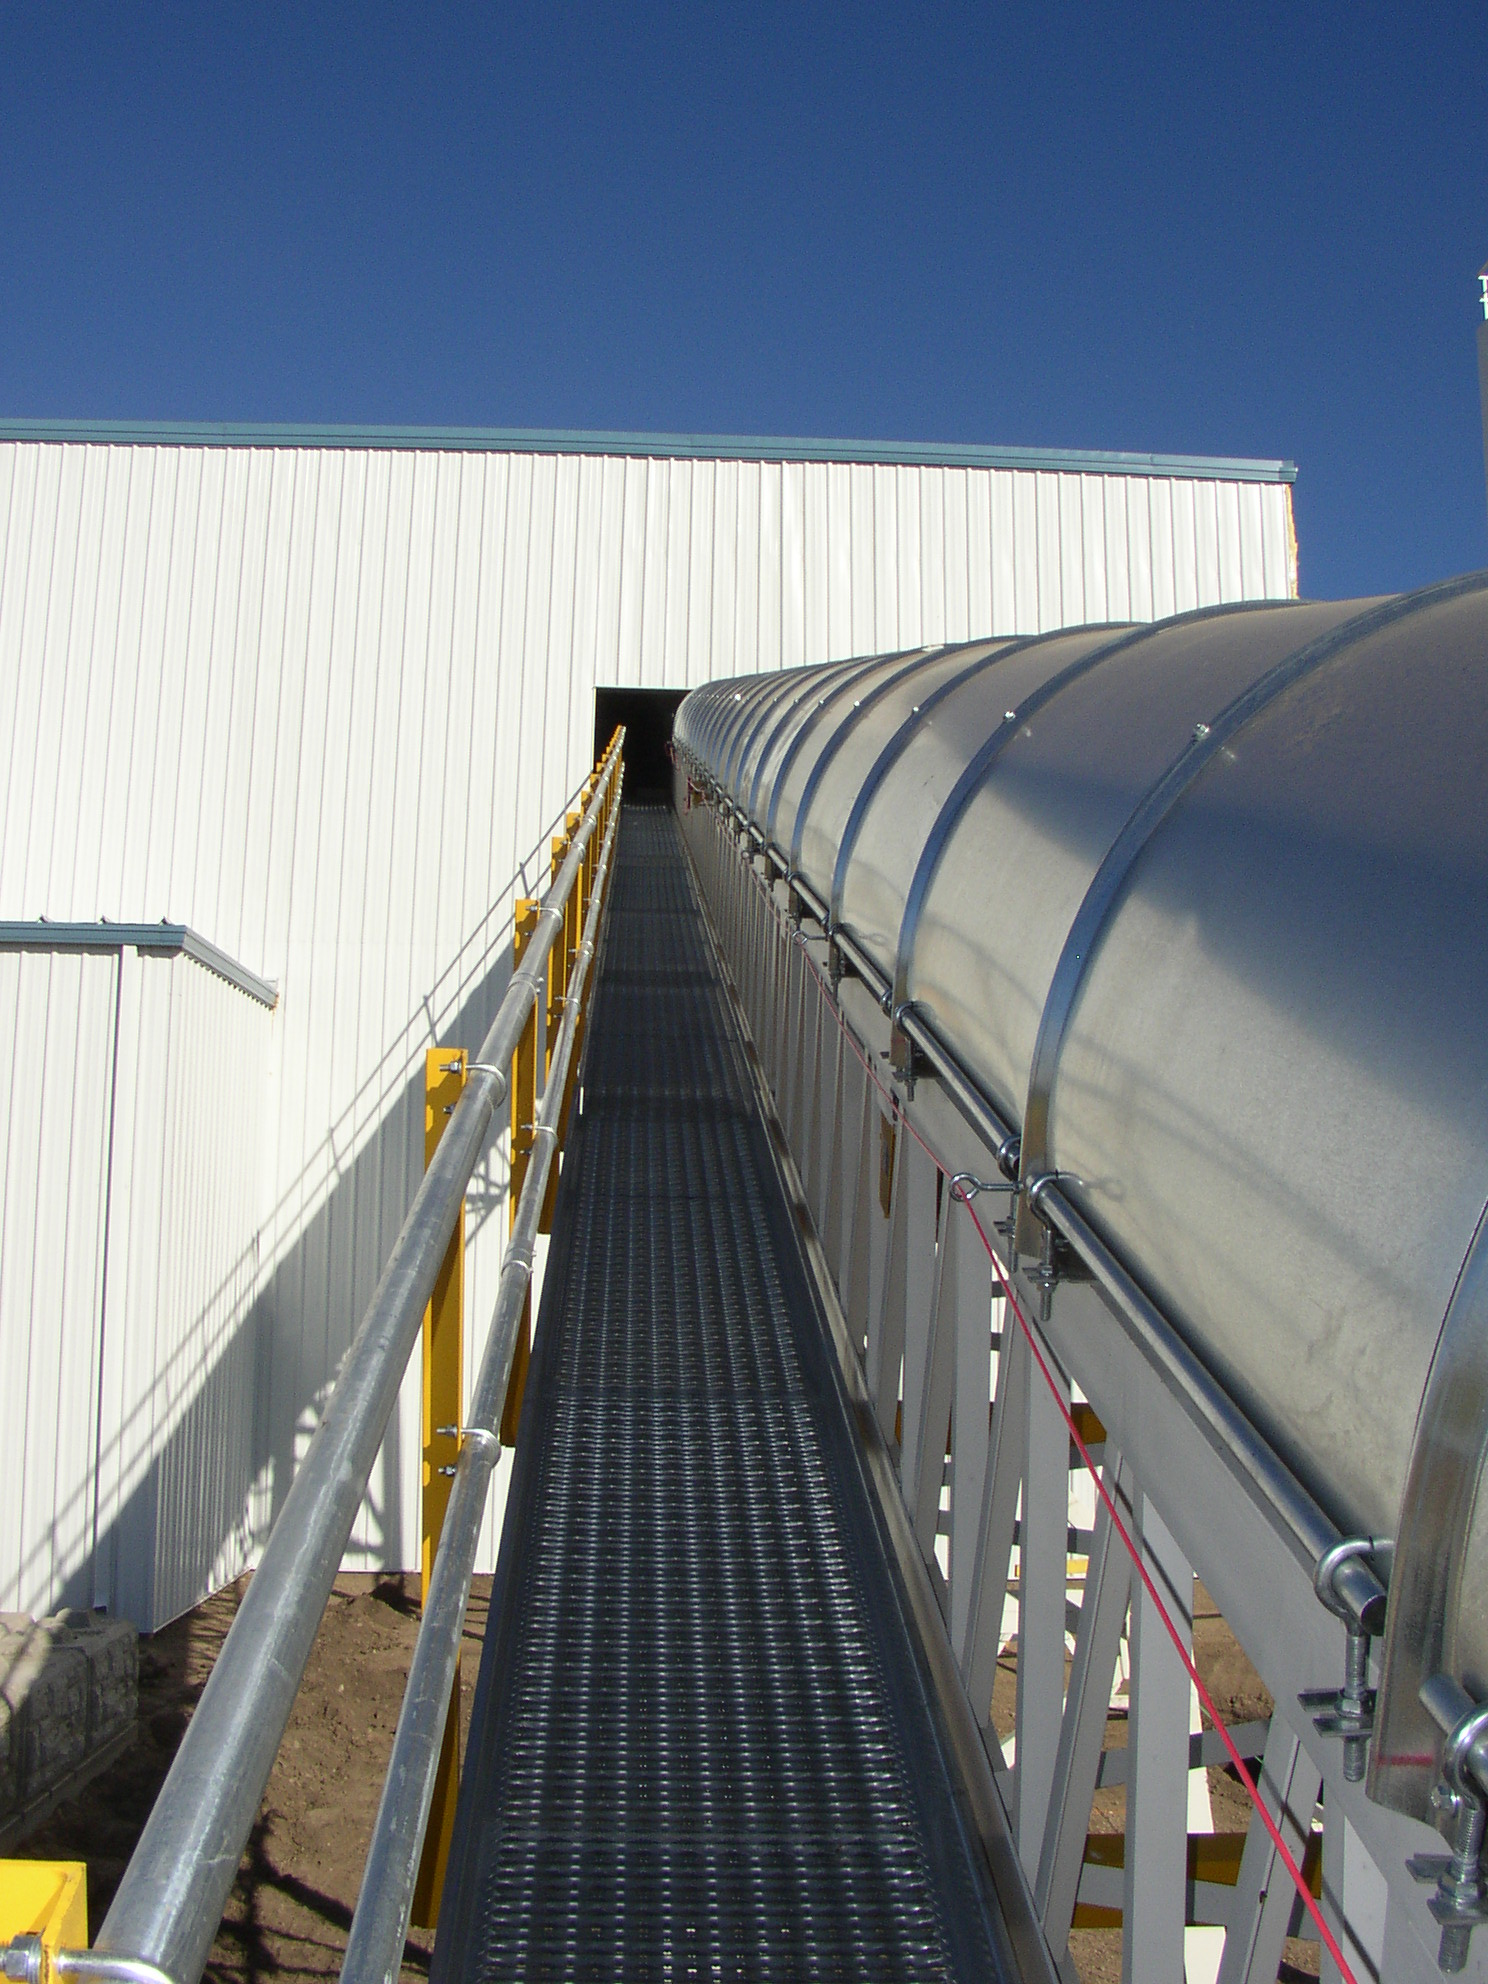 Plant Feed Conveyor with Access